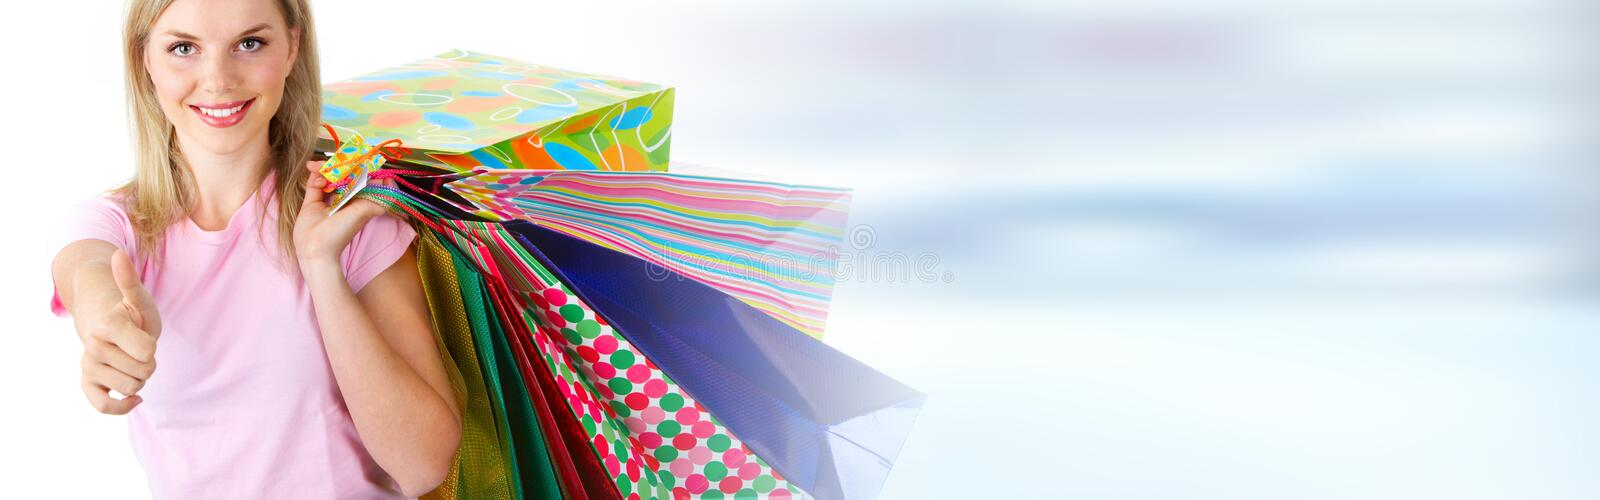 Happy buyer girl with bags stock photography